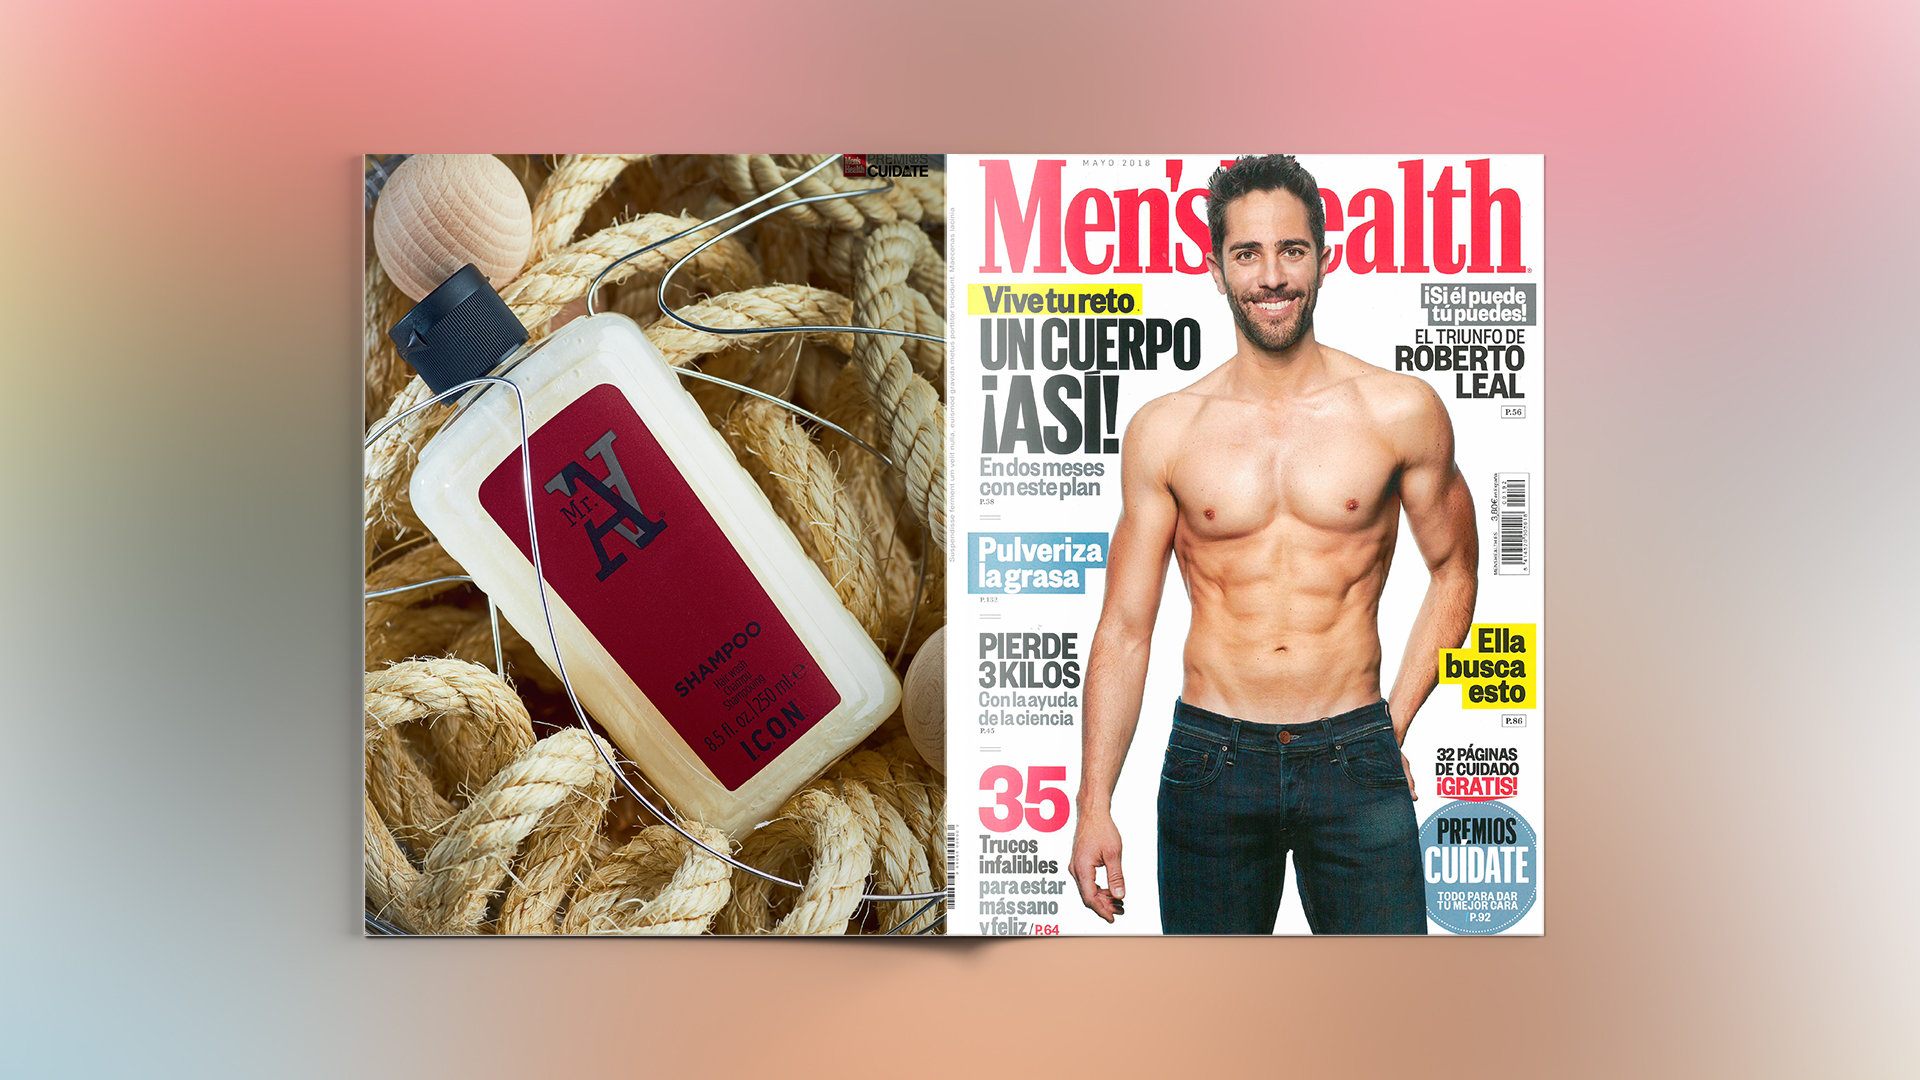 Premios Cuidate 2018 by Men's Health